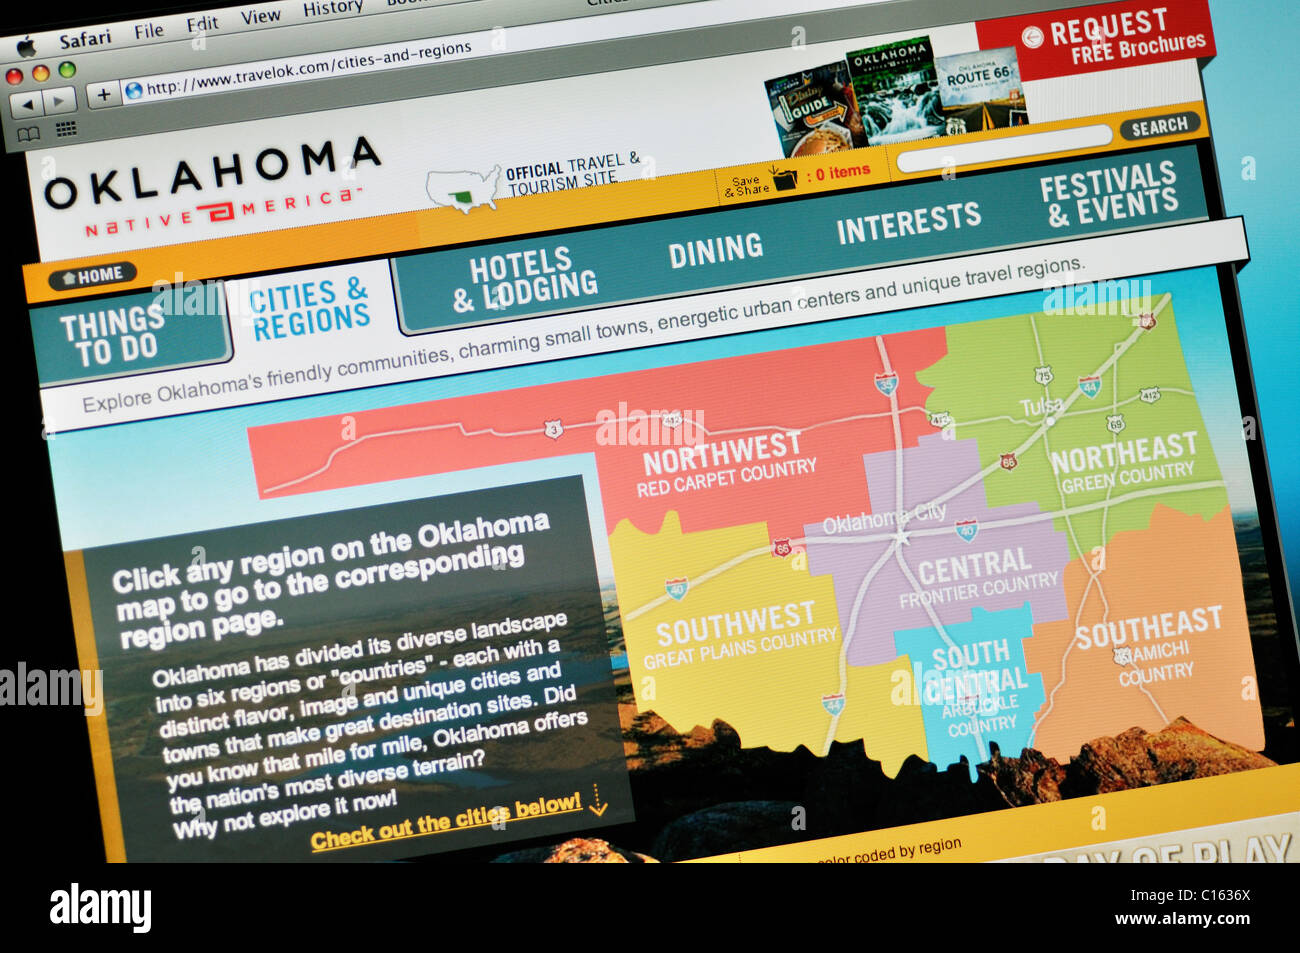 Oklahoma official state tourism website - Stock Image